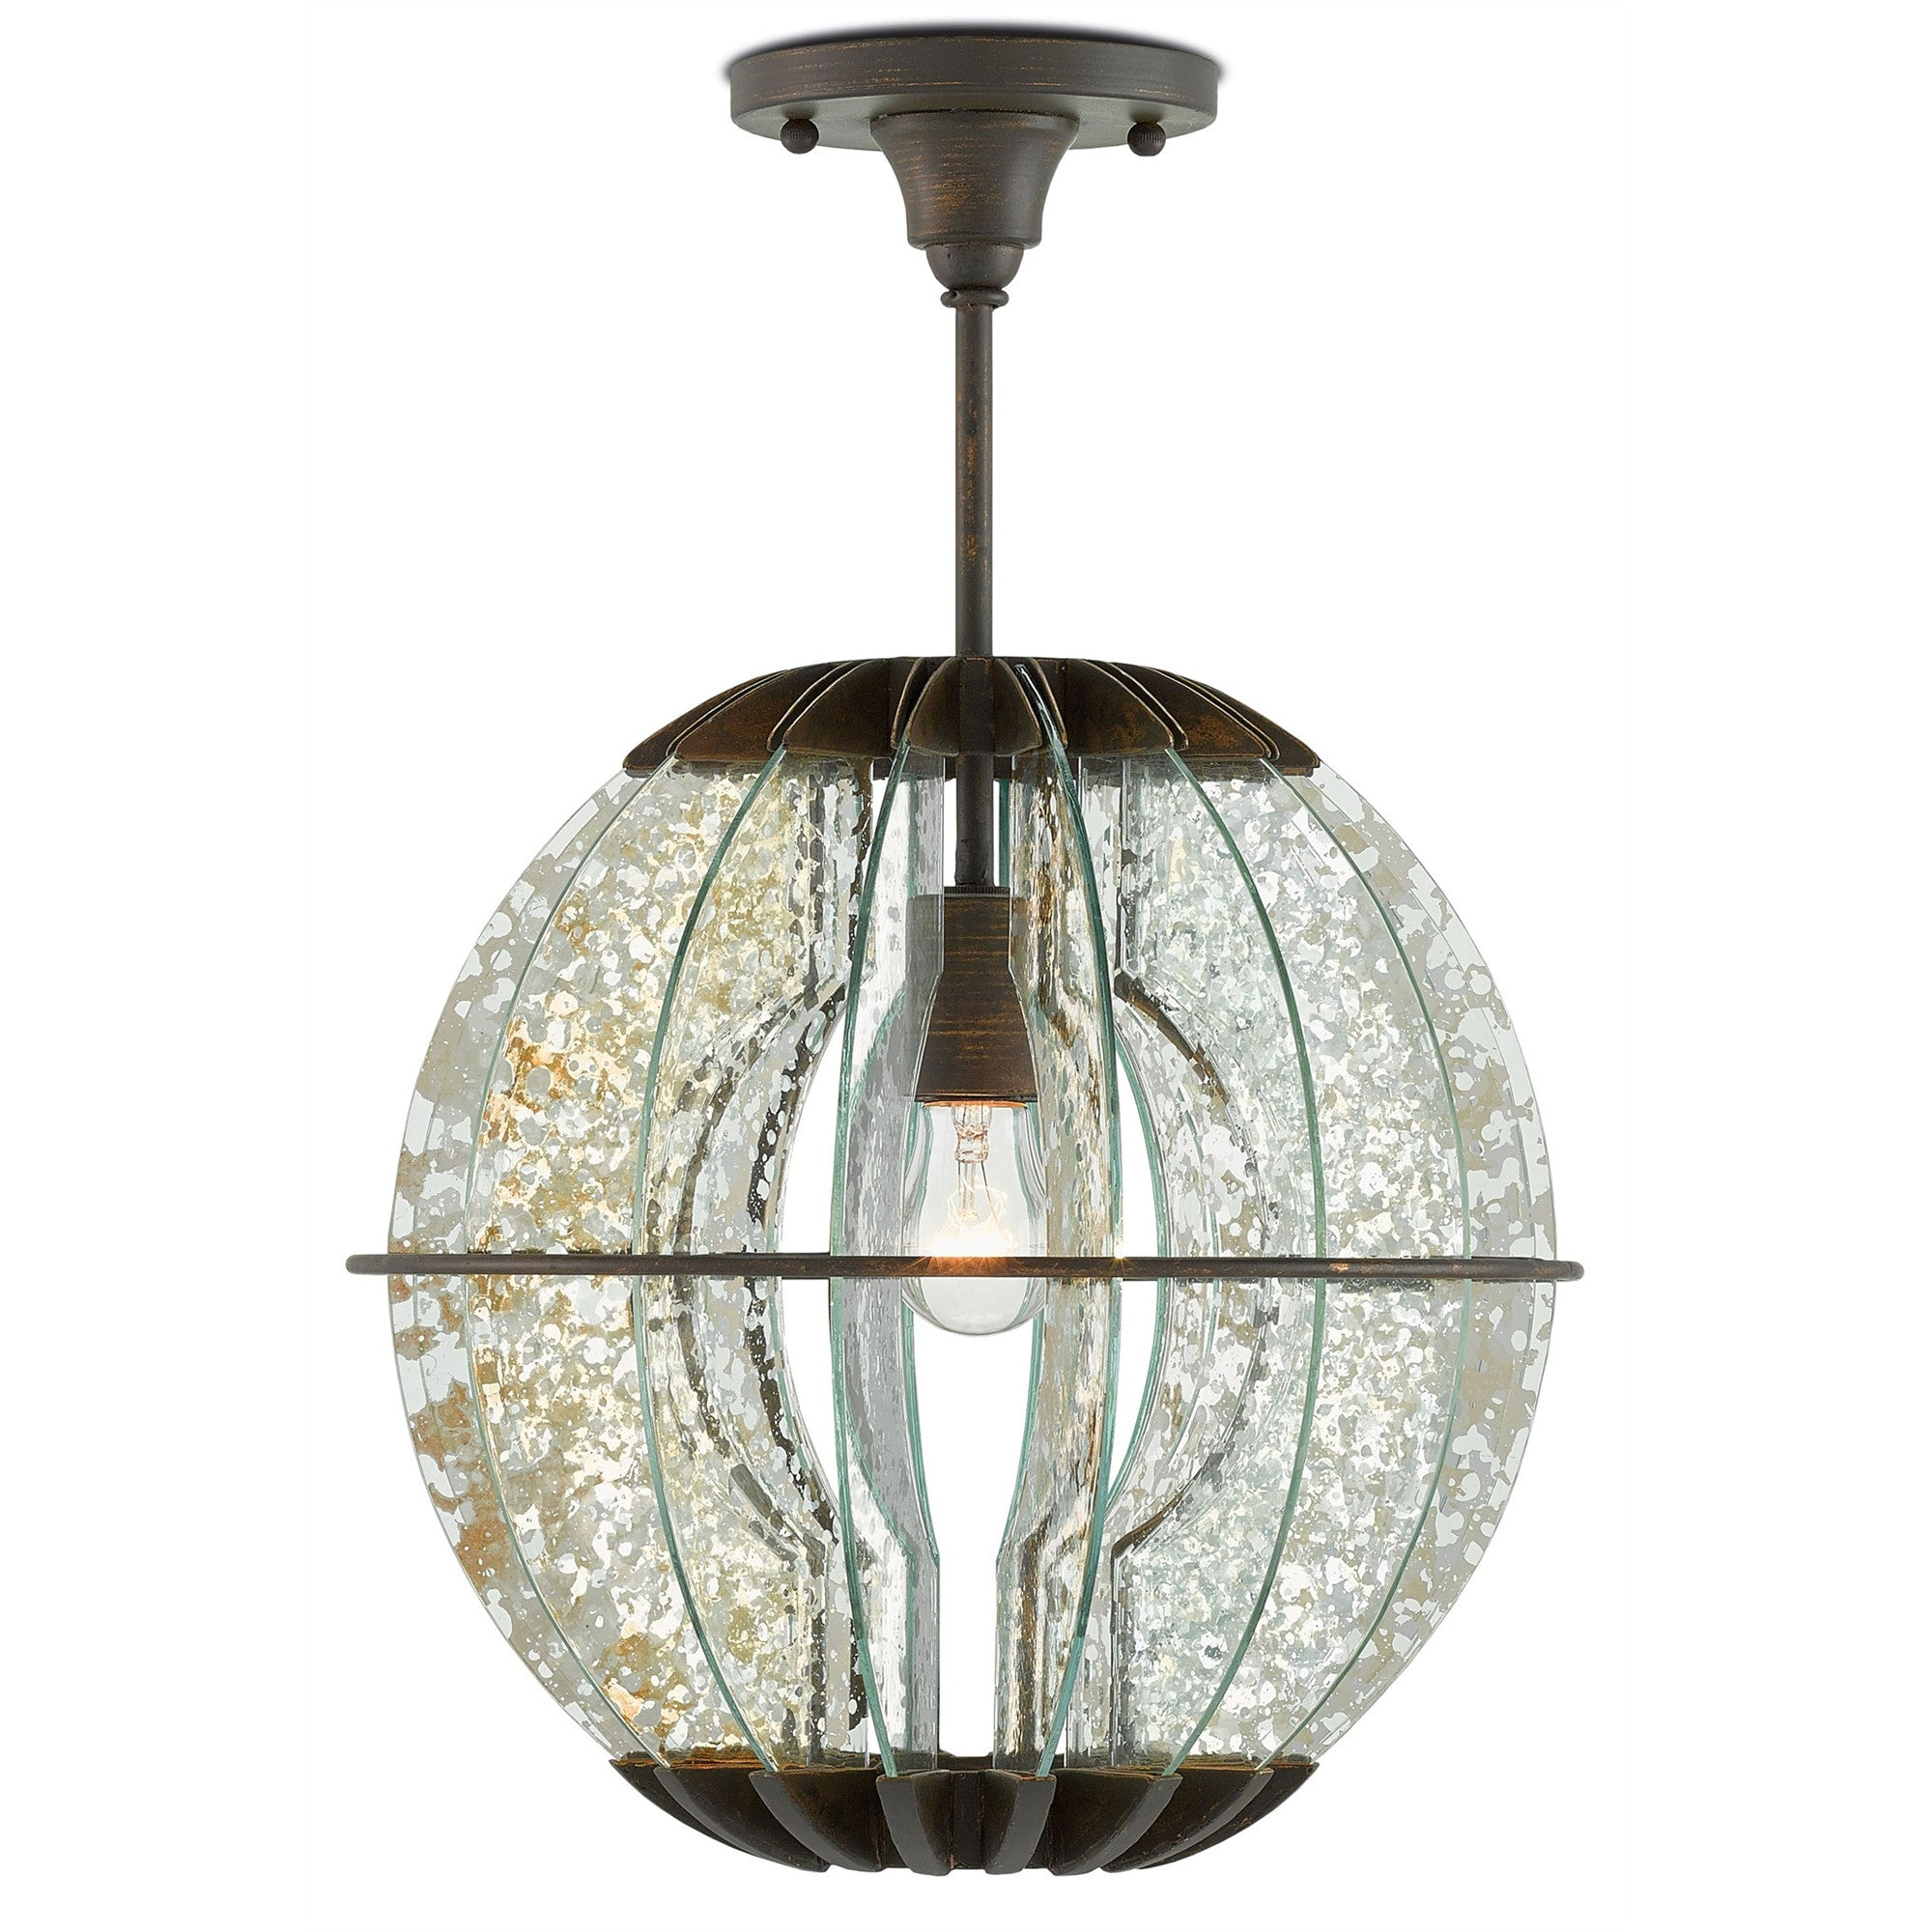 Currey and Co - Zanzibar Pendant/Semi-Flush